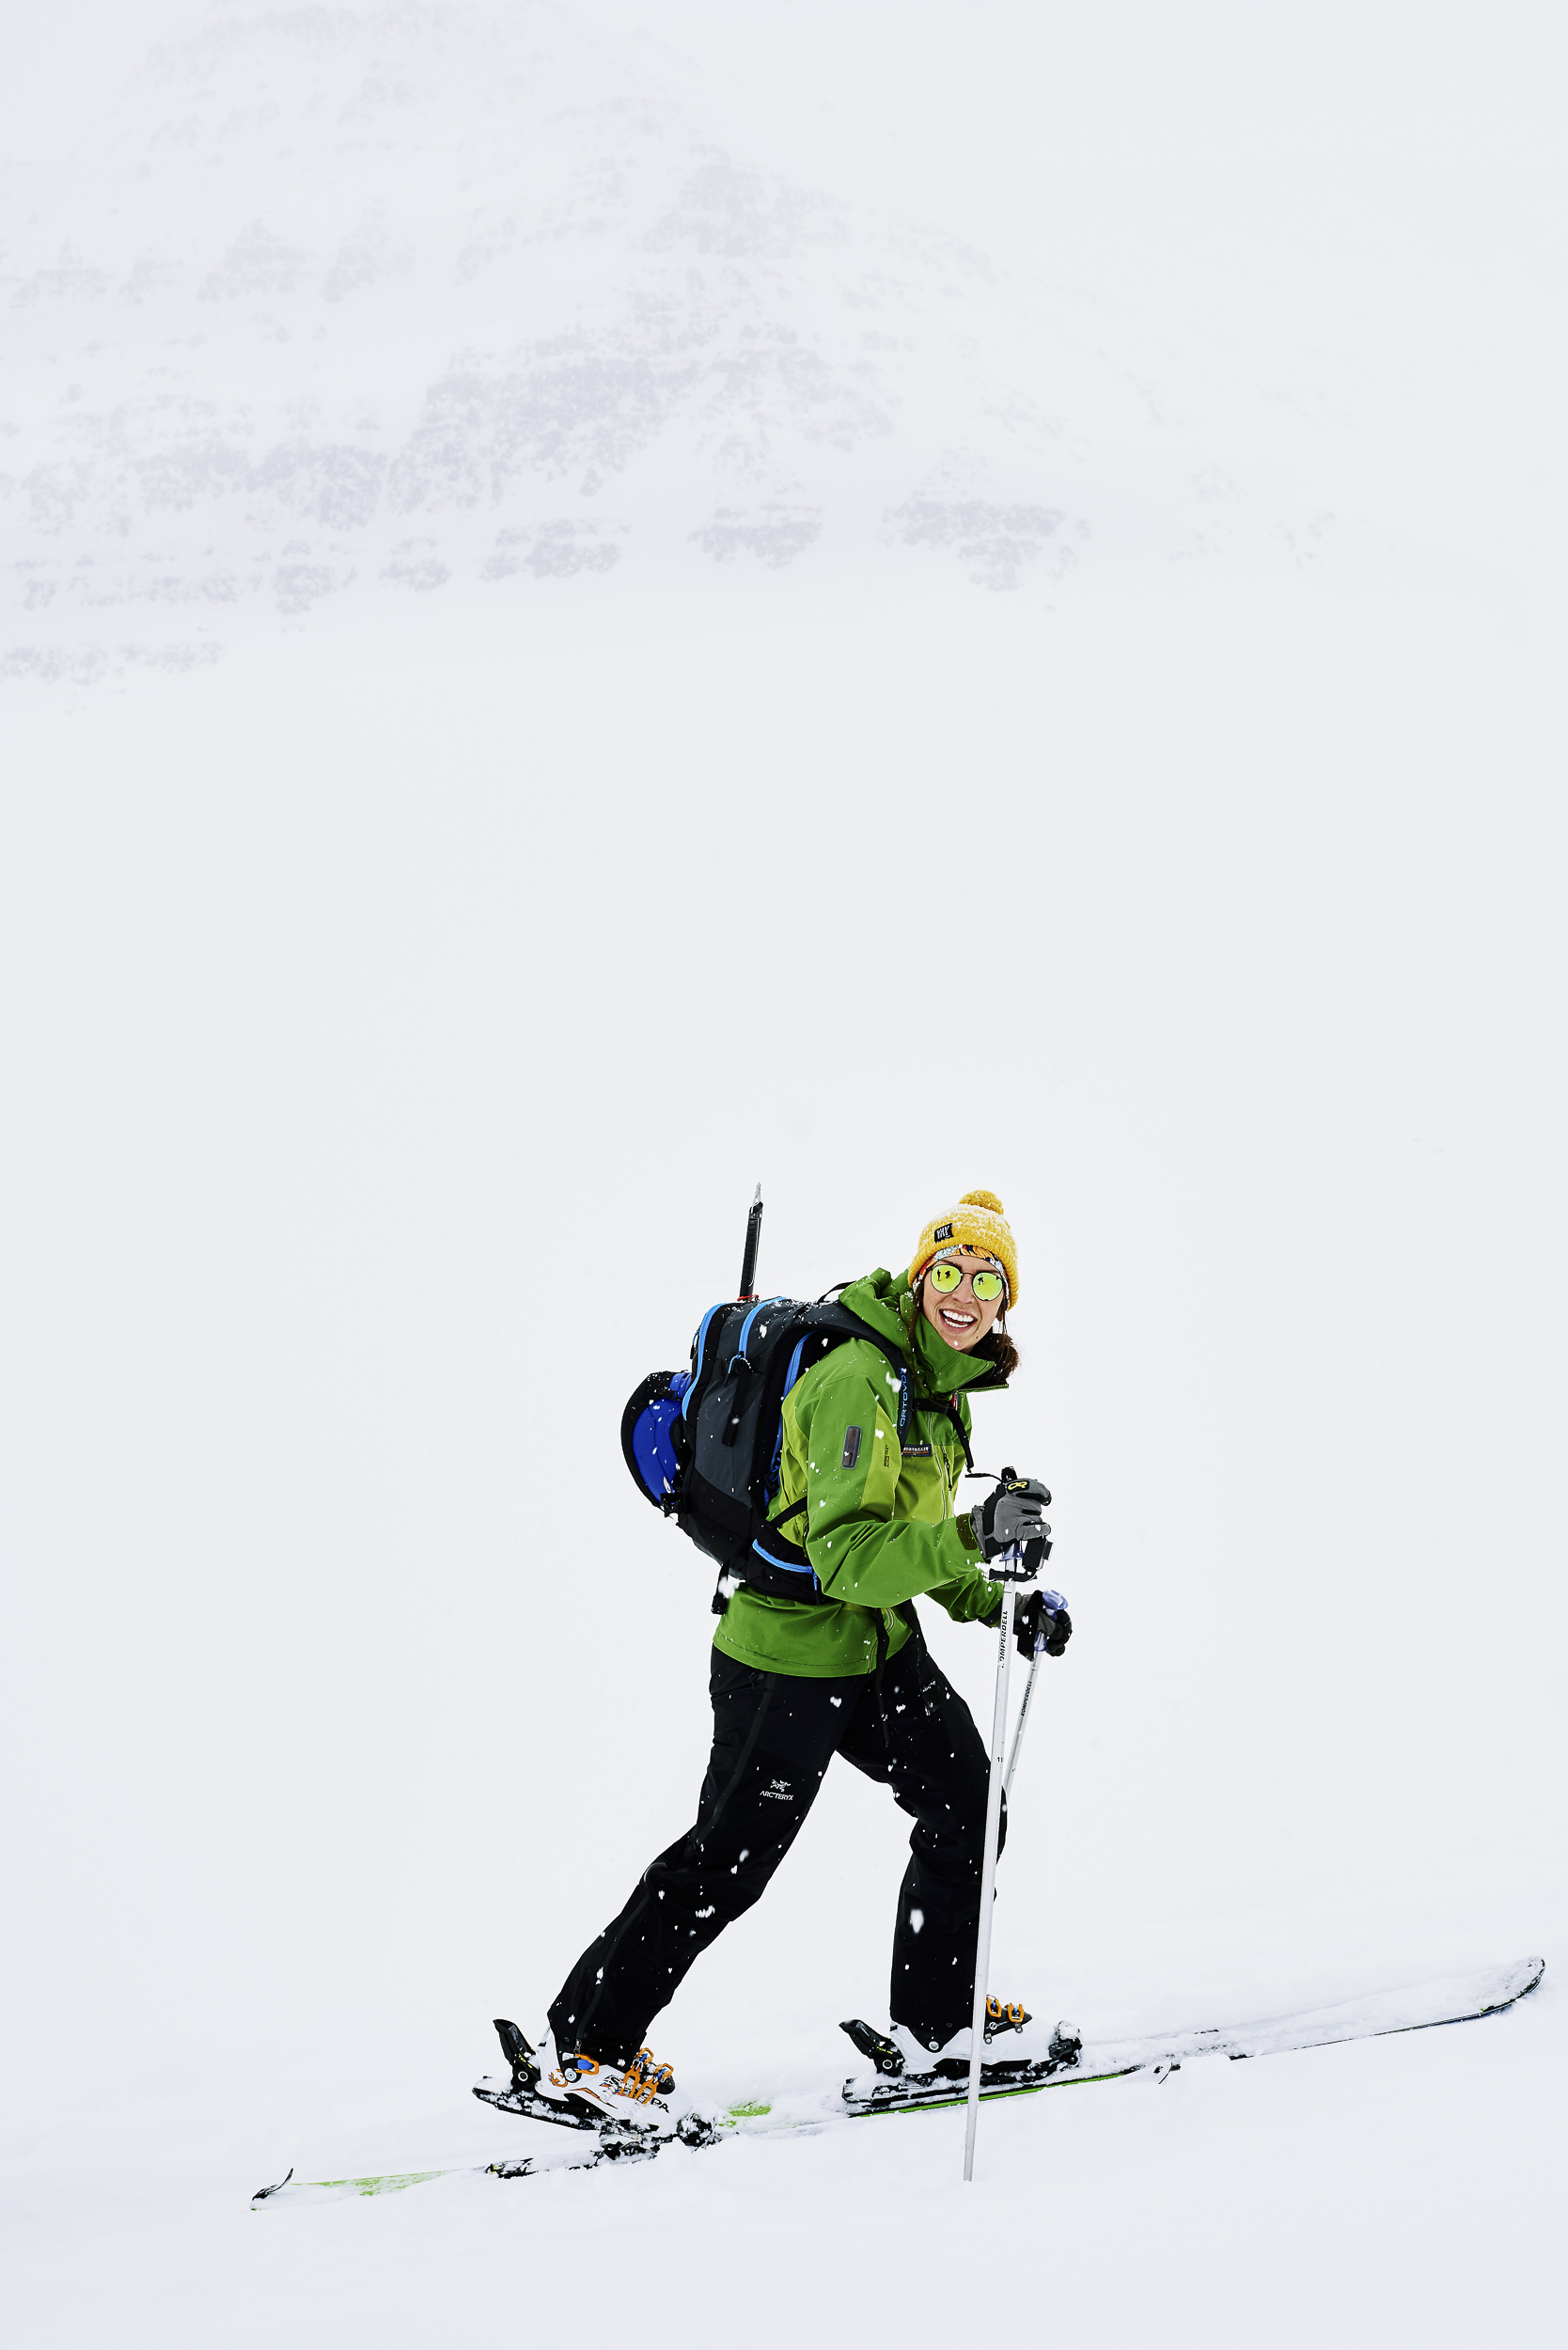 Iceland-Backcountry-Skiing-Bianca-Smiling-2025